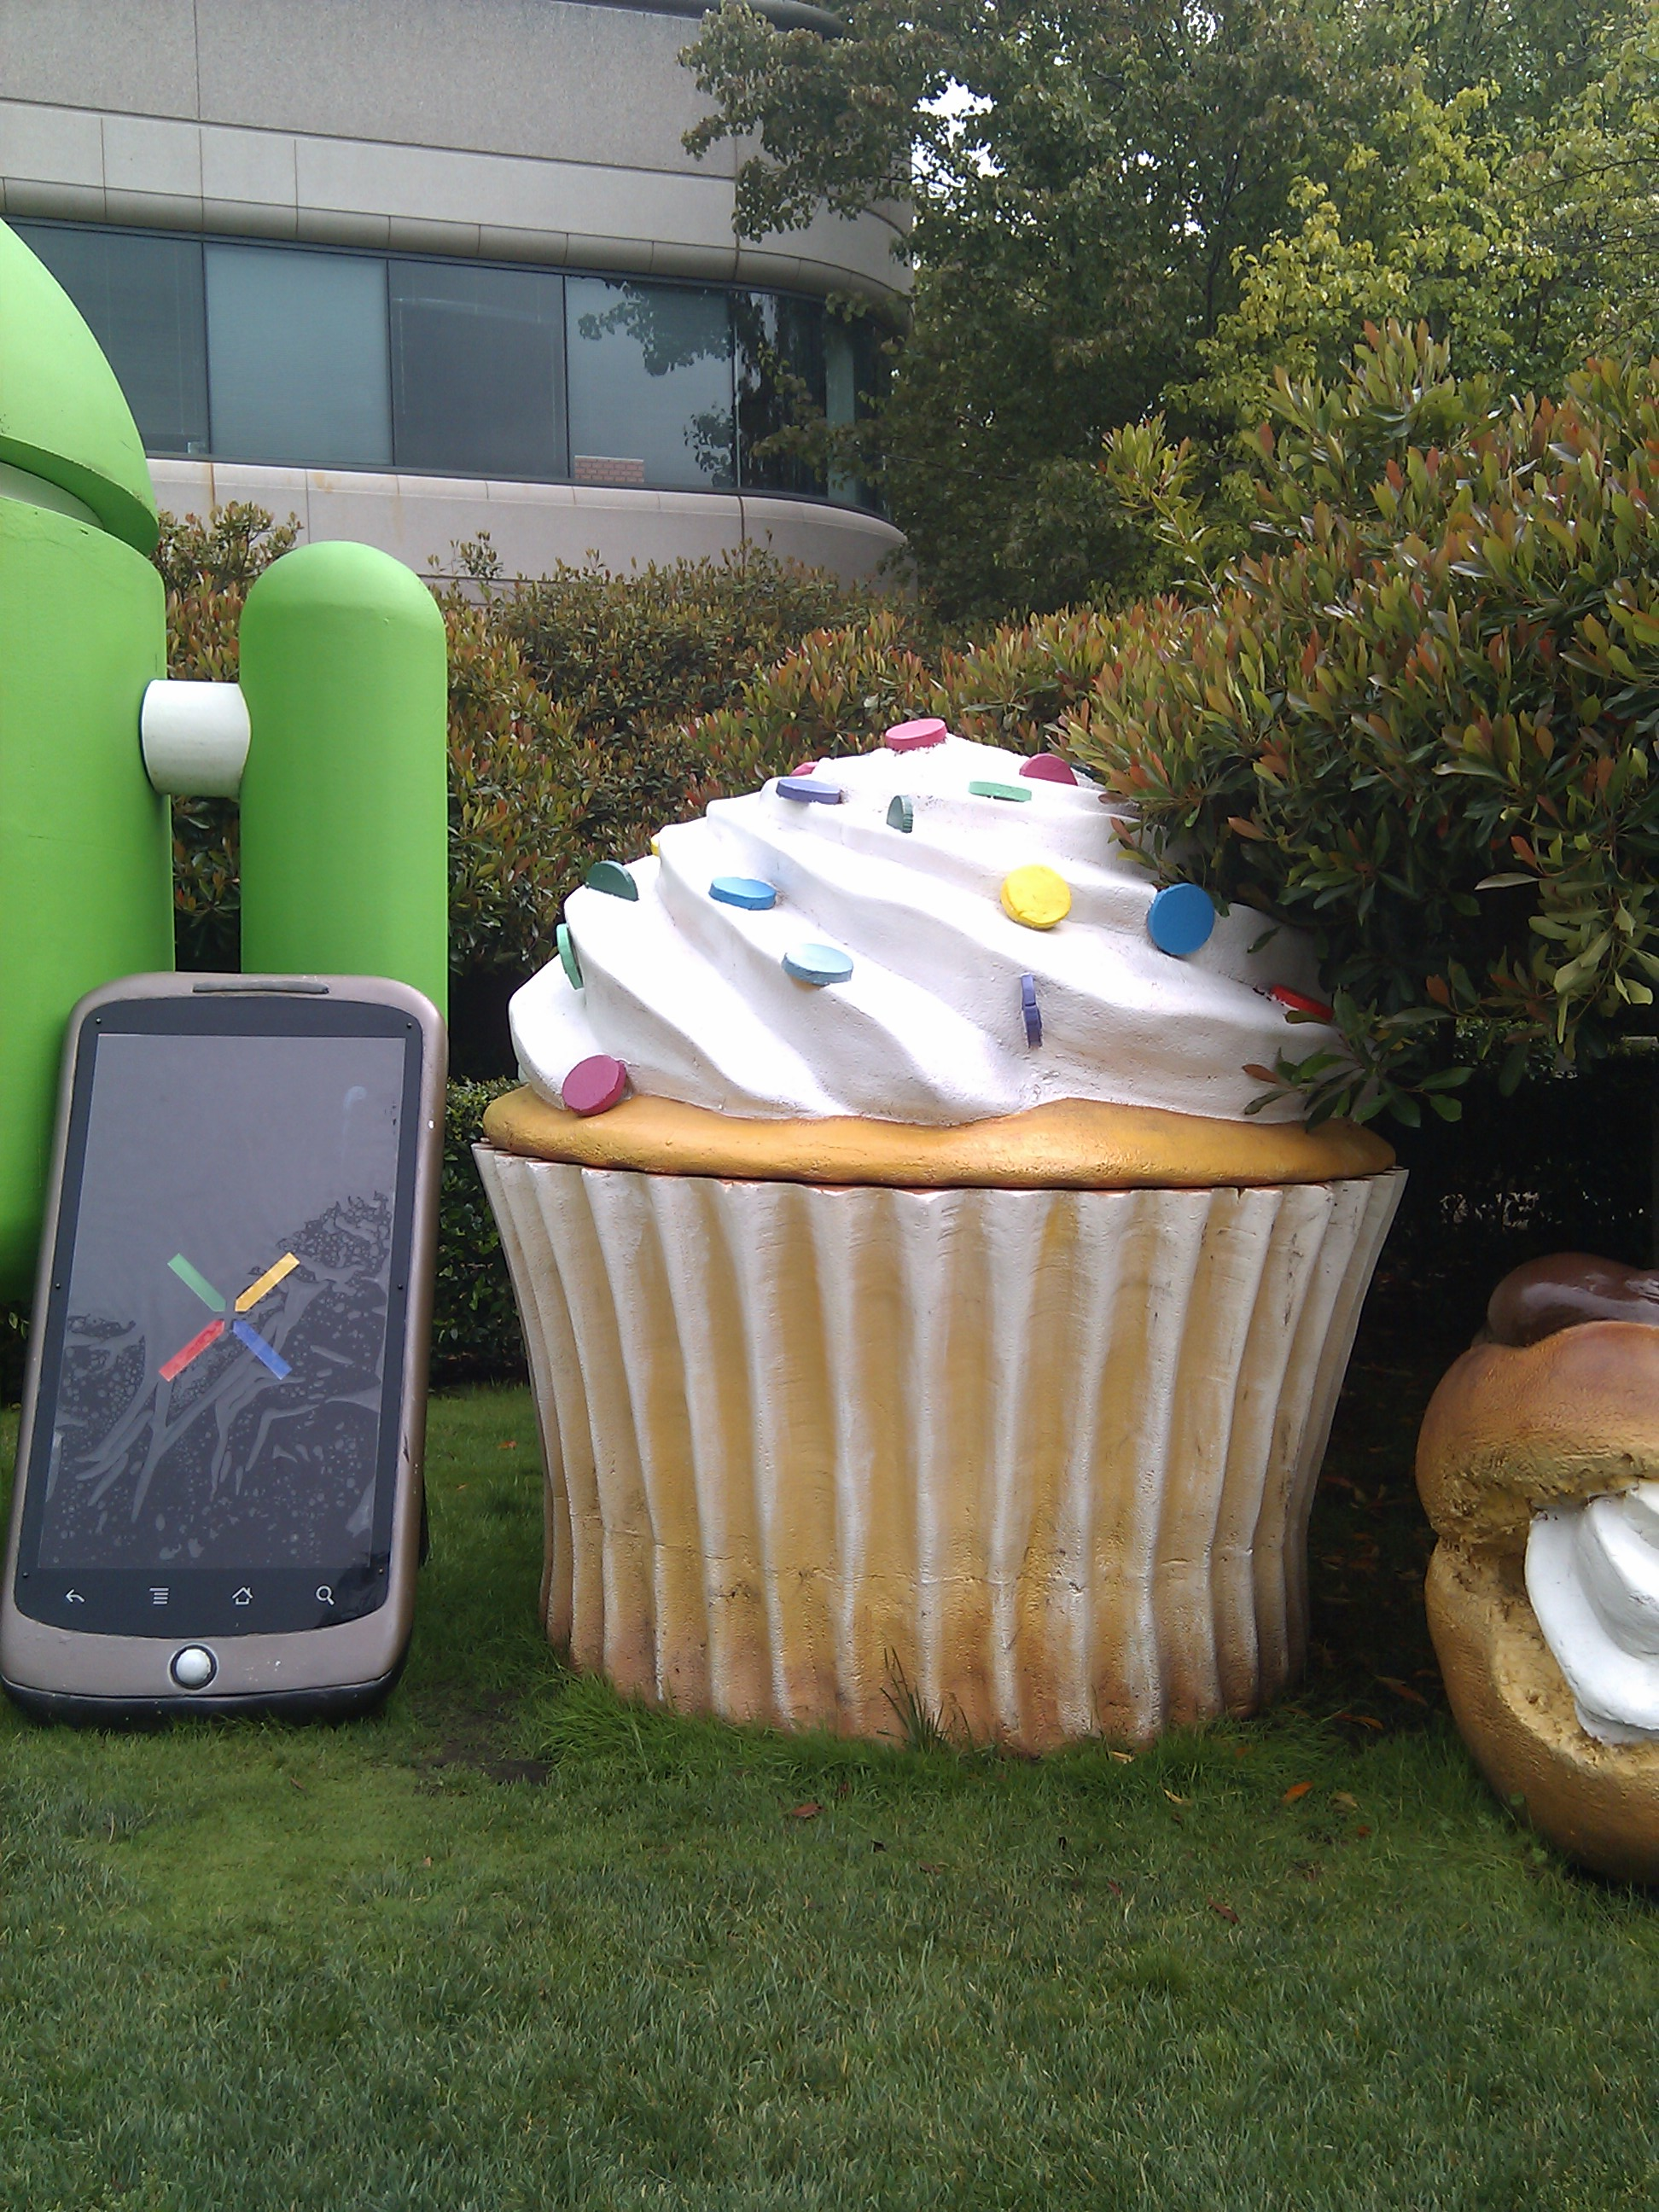 Cupcake android statue